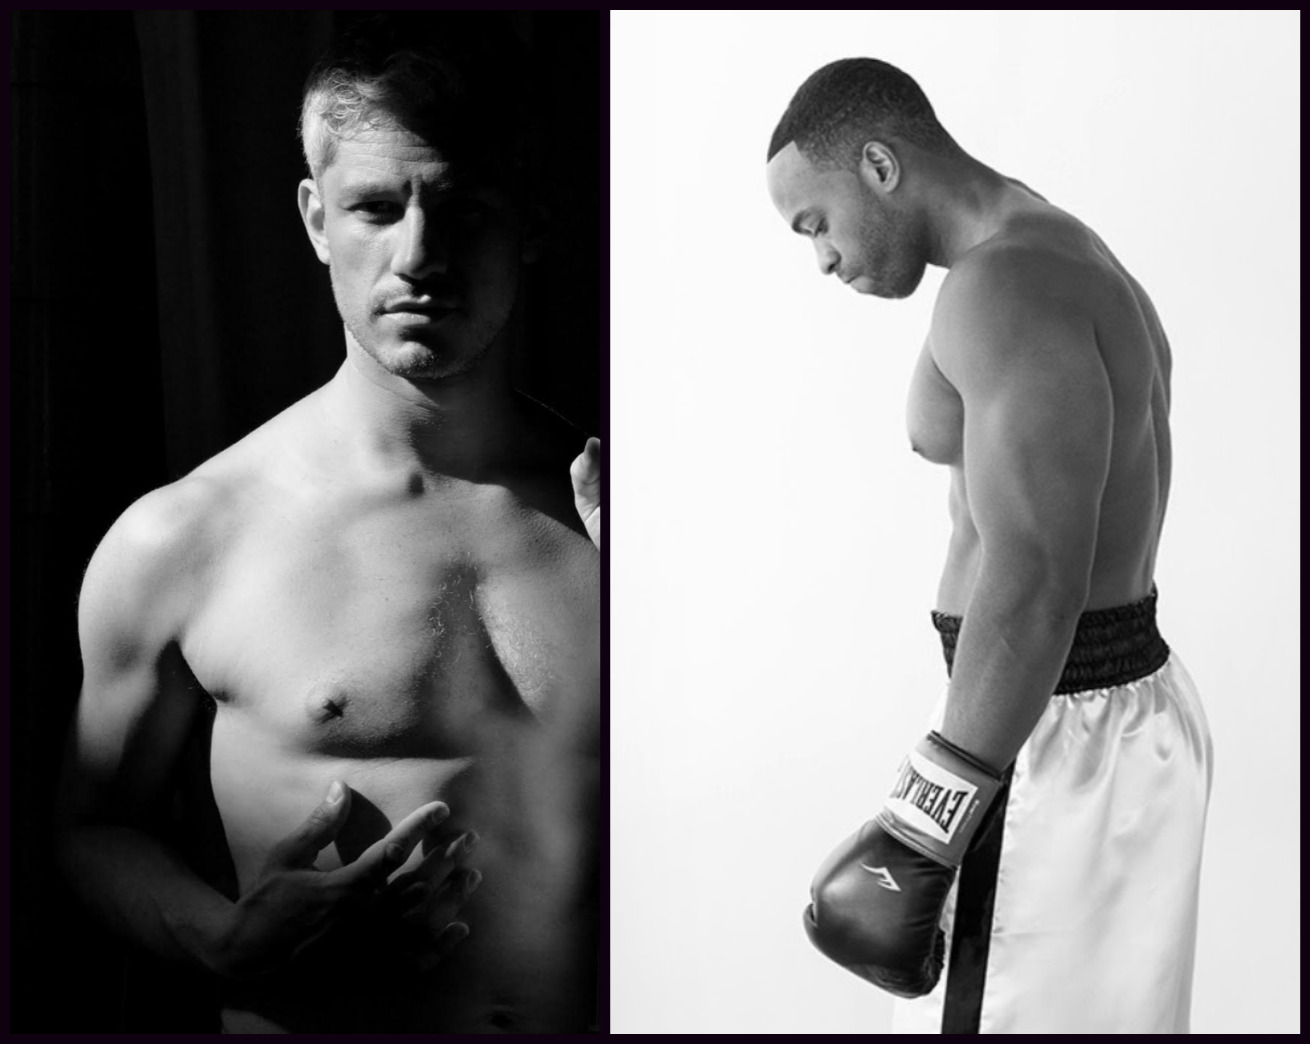 Interview With Mr. Barihunks: The Beefcake Side Of Oper